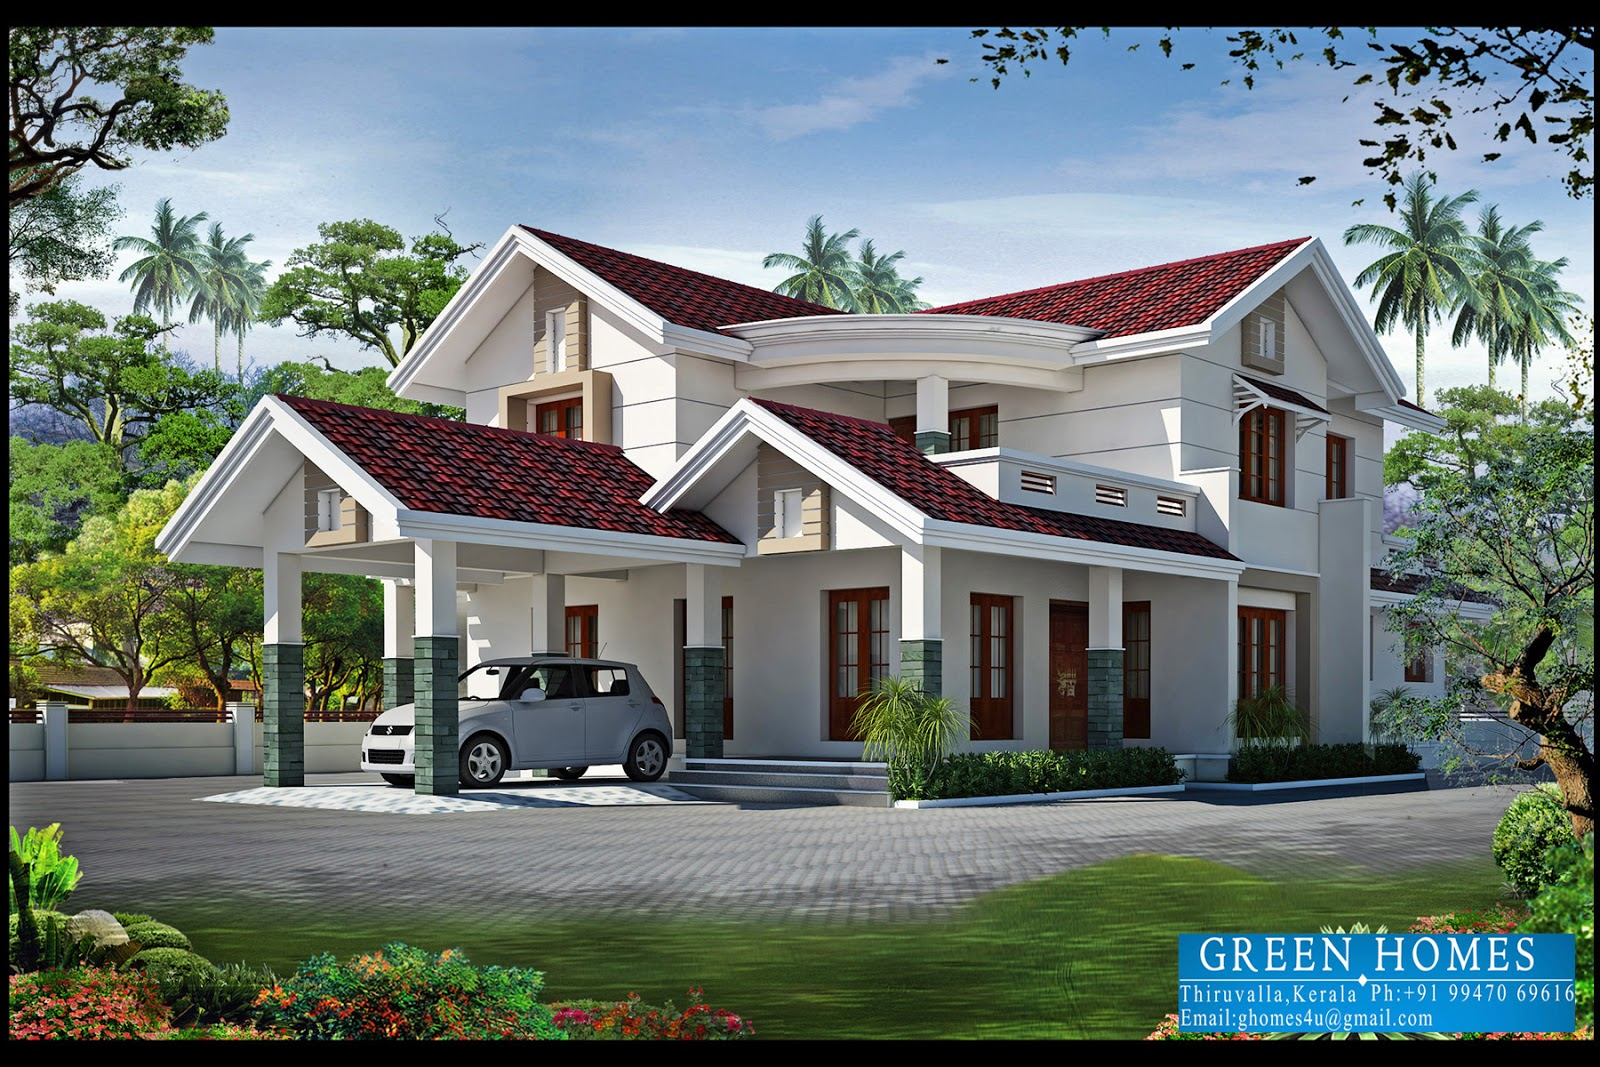 Green homes 4bhk kerala home design 2550 Indian model house plan design